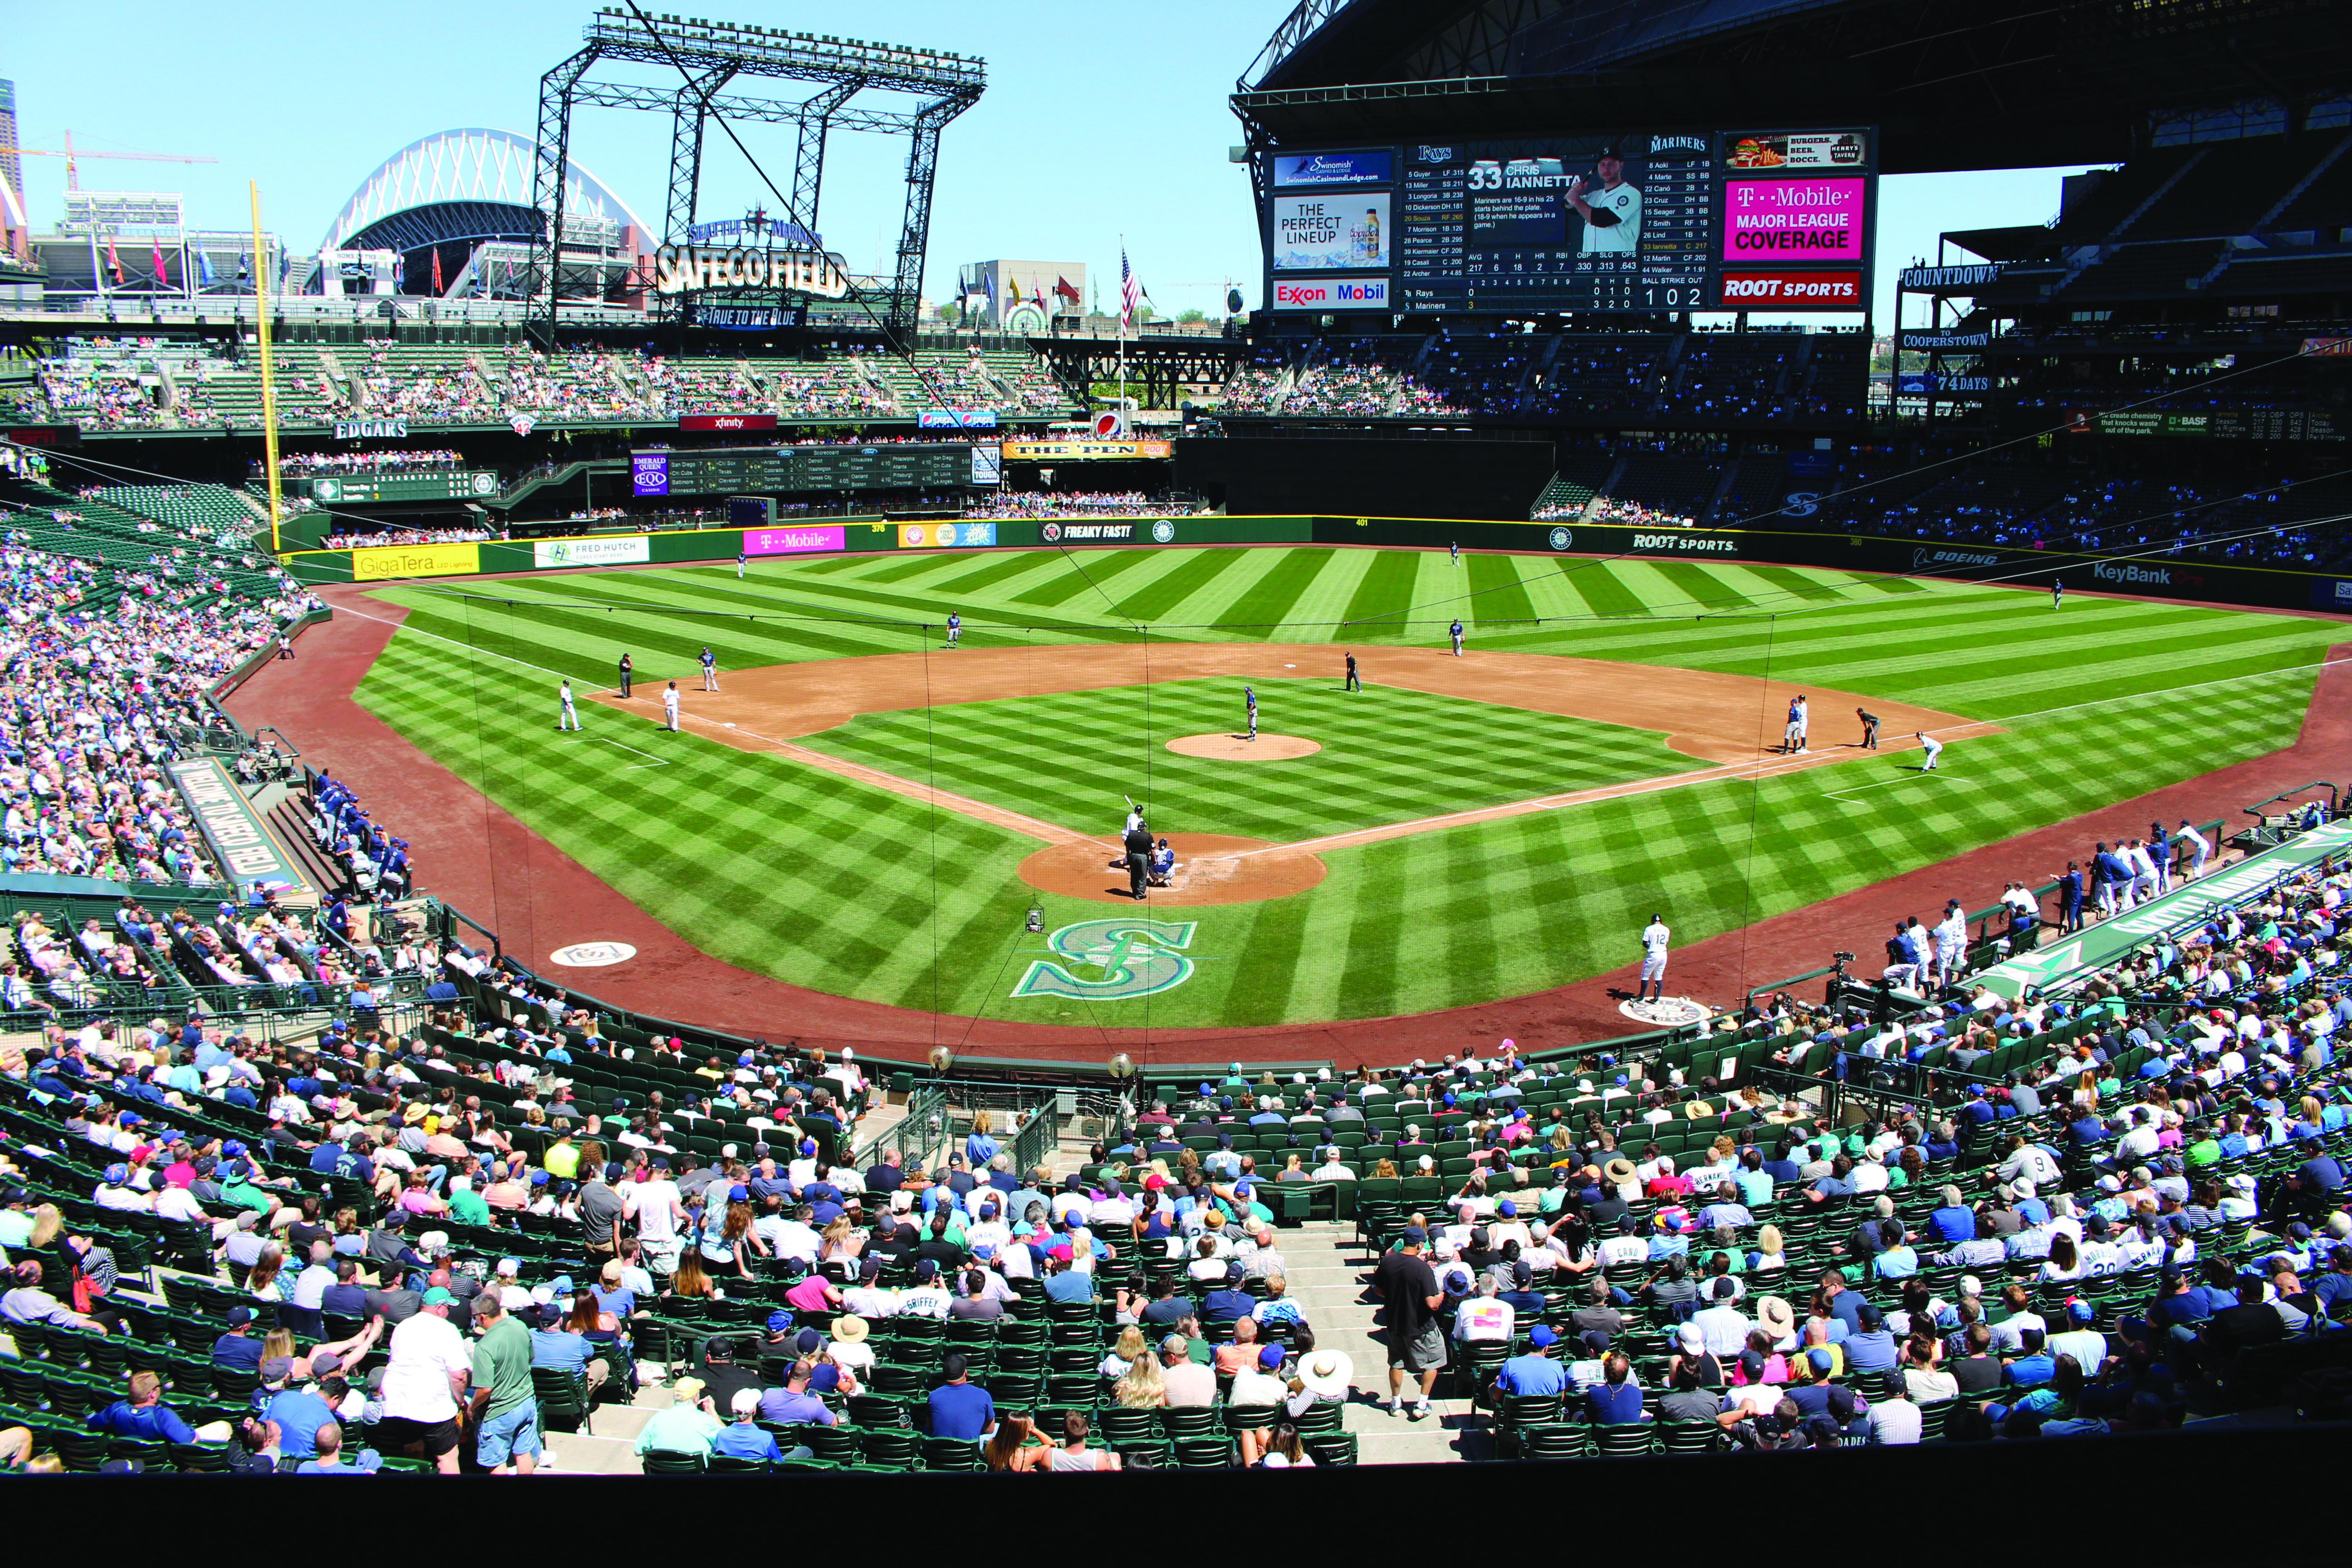 Major League debut for journalism student – Buccaneer managing editor hired to help cover a Seattle Mariners game for the Associated Press